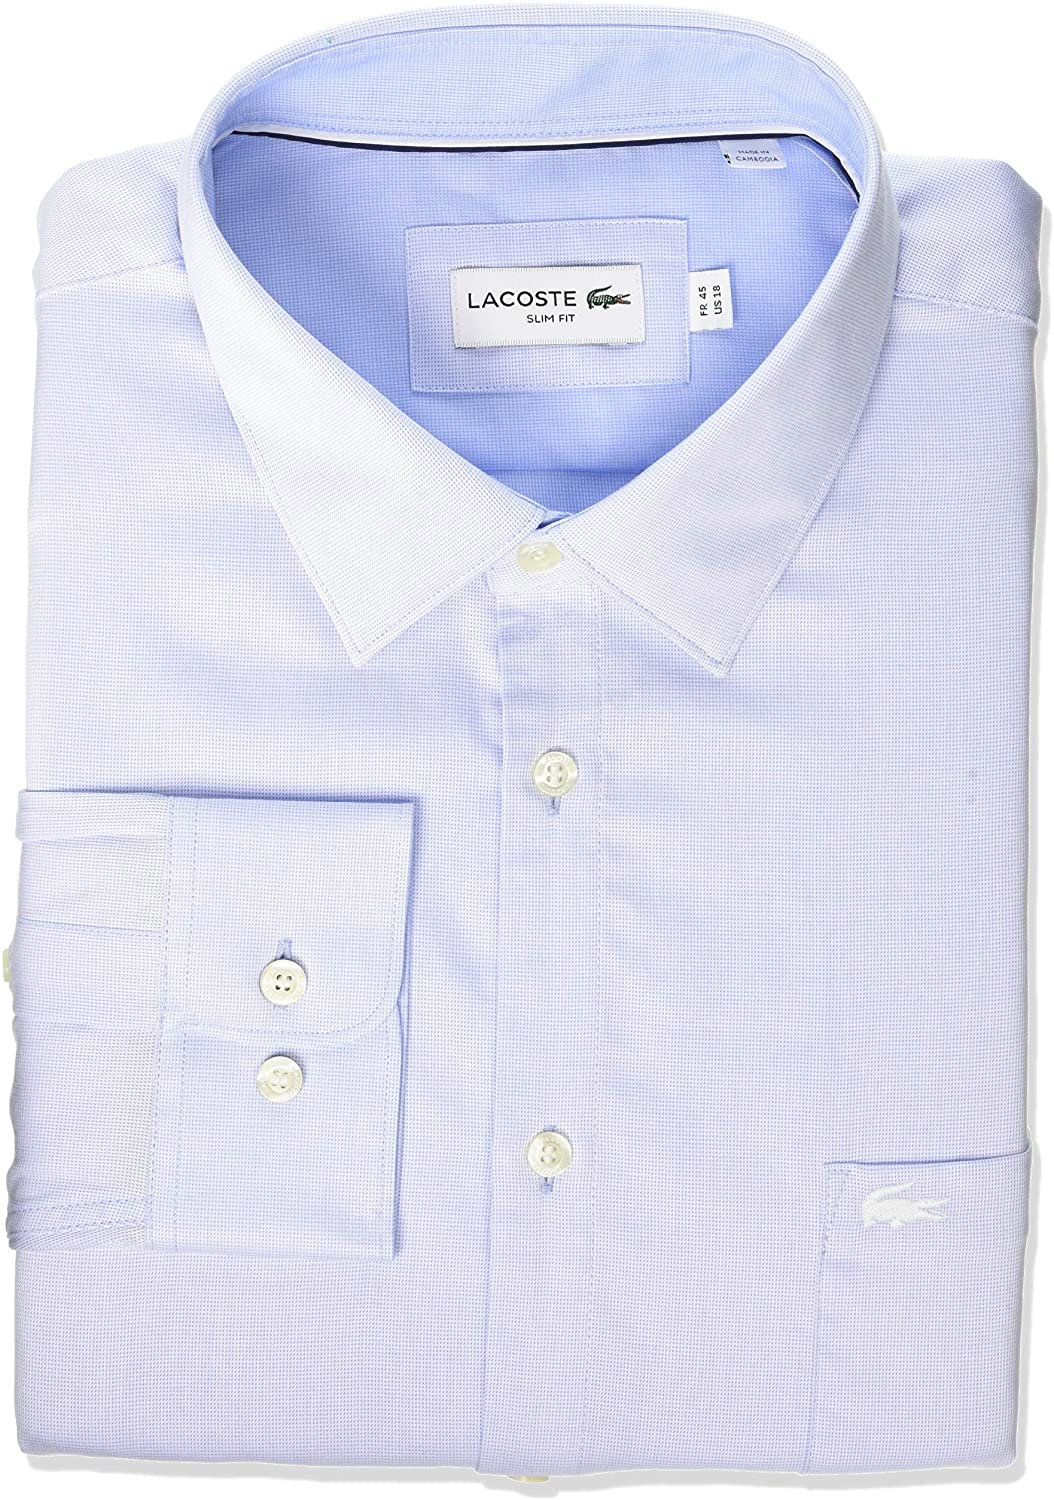 Lacoste Men's Long Sleeve Textured Semi Wide Collar Slim Fit Shirt